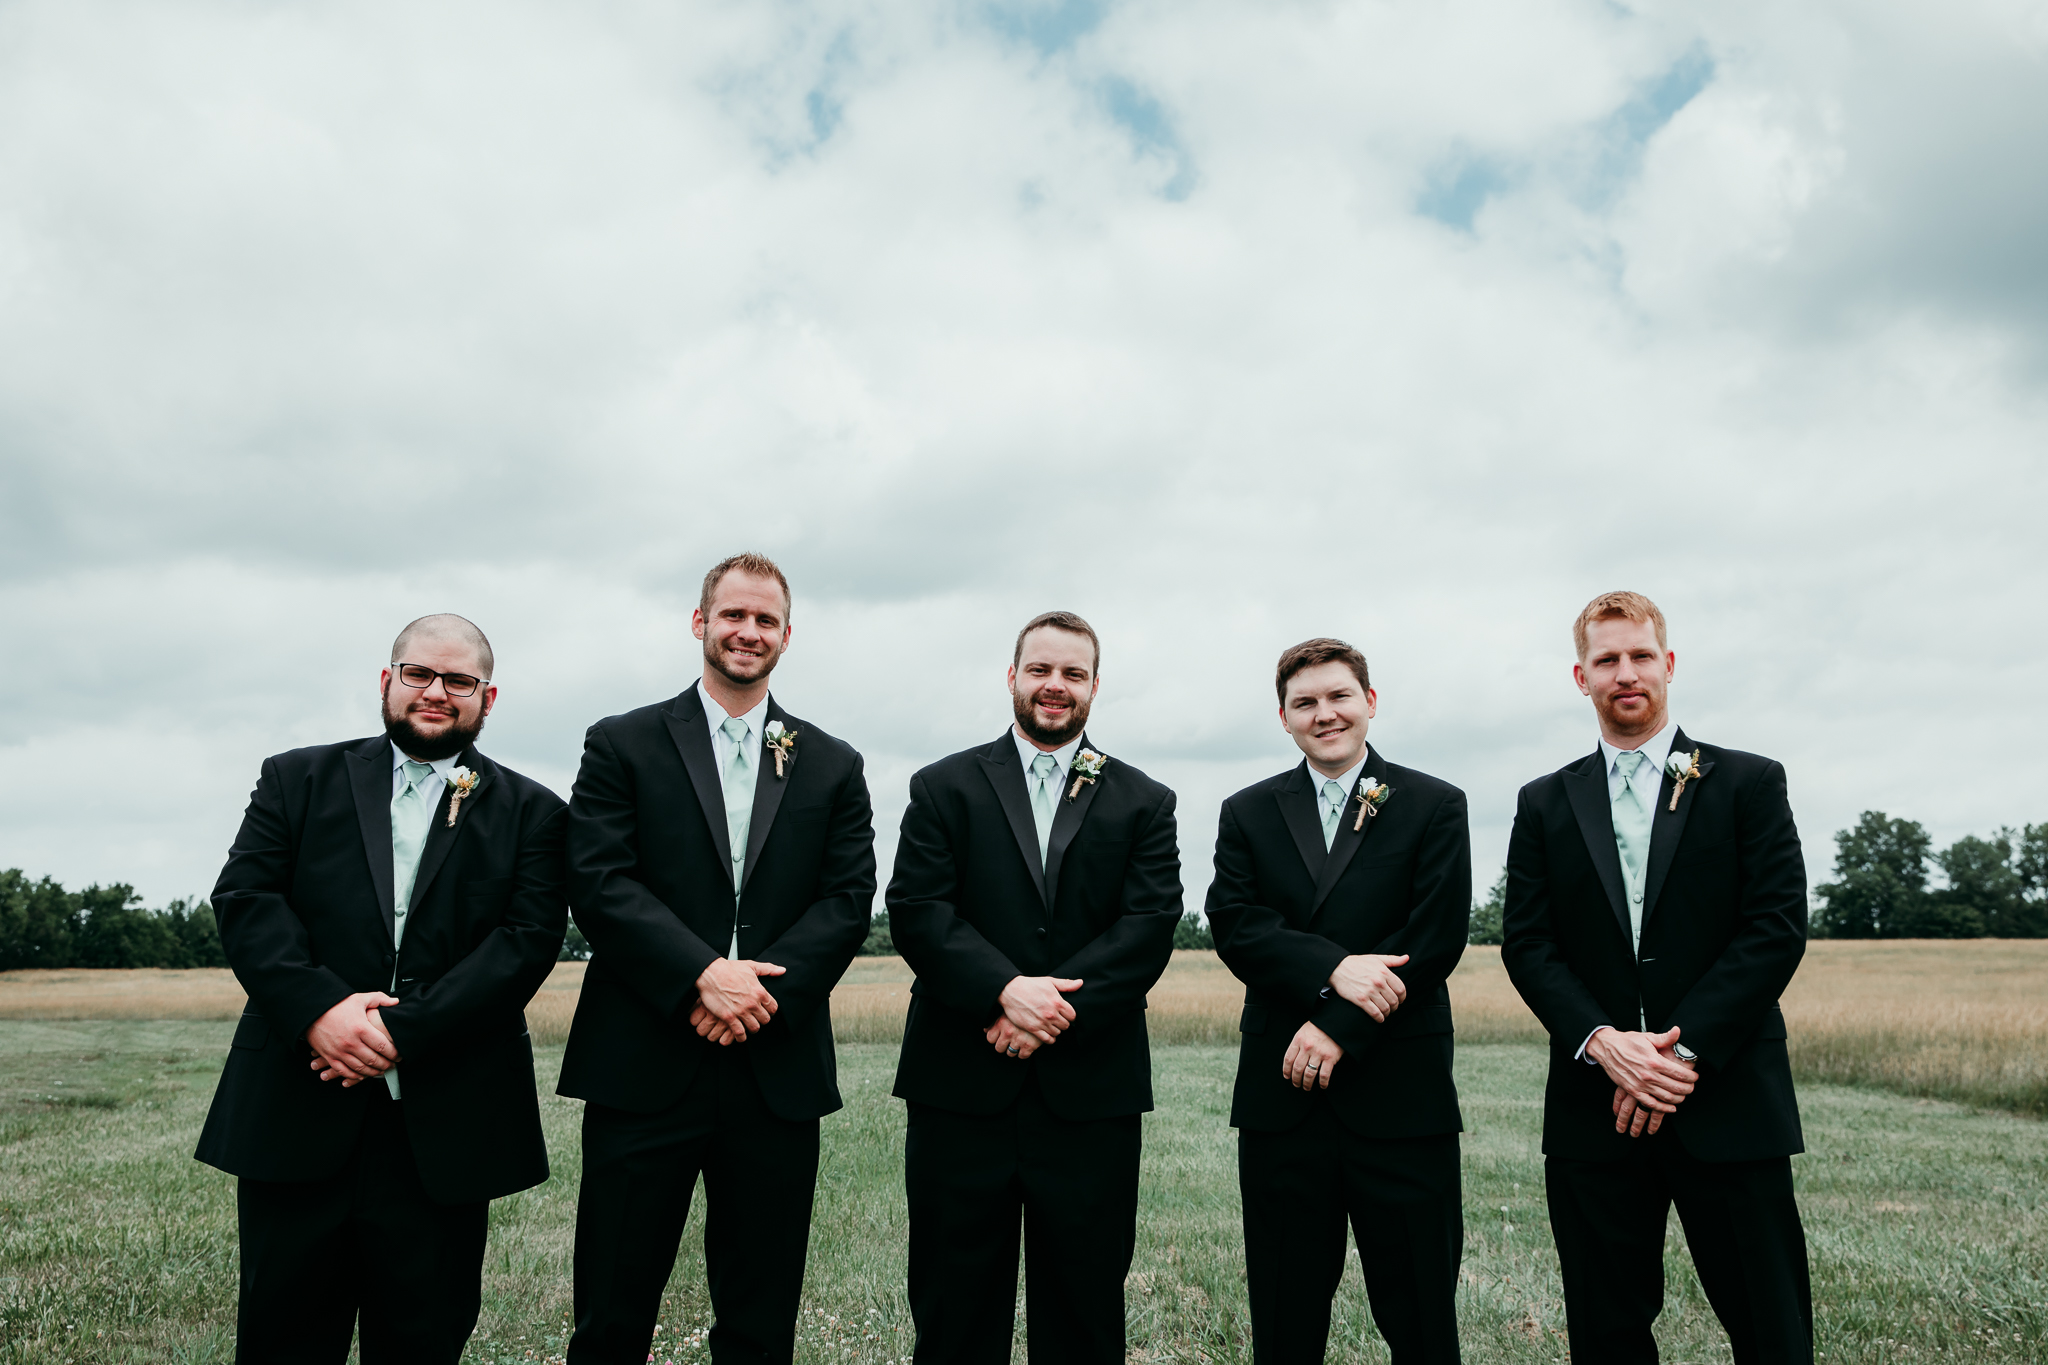 Wedding Photography in Lee's Summit (5)